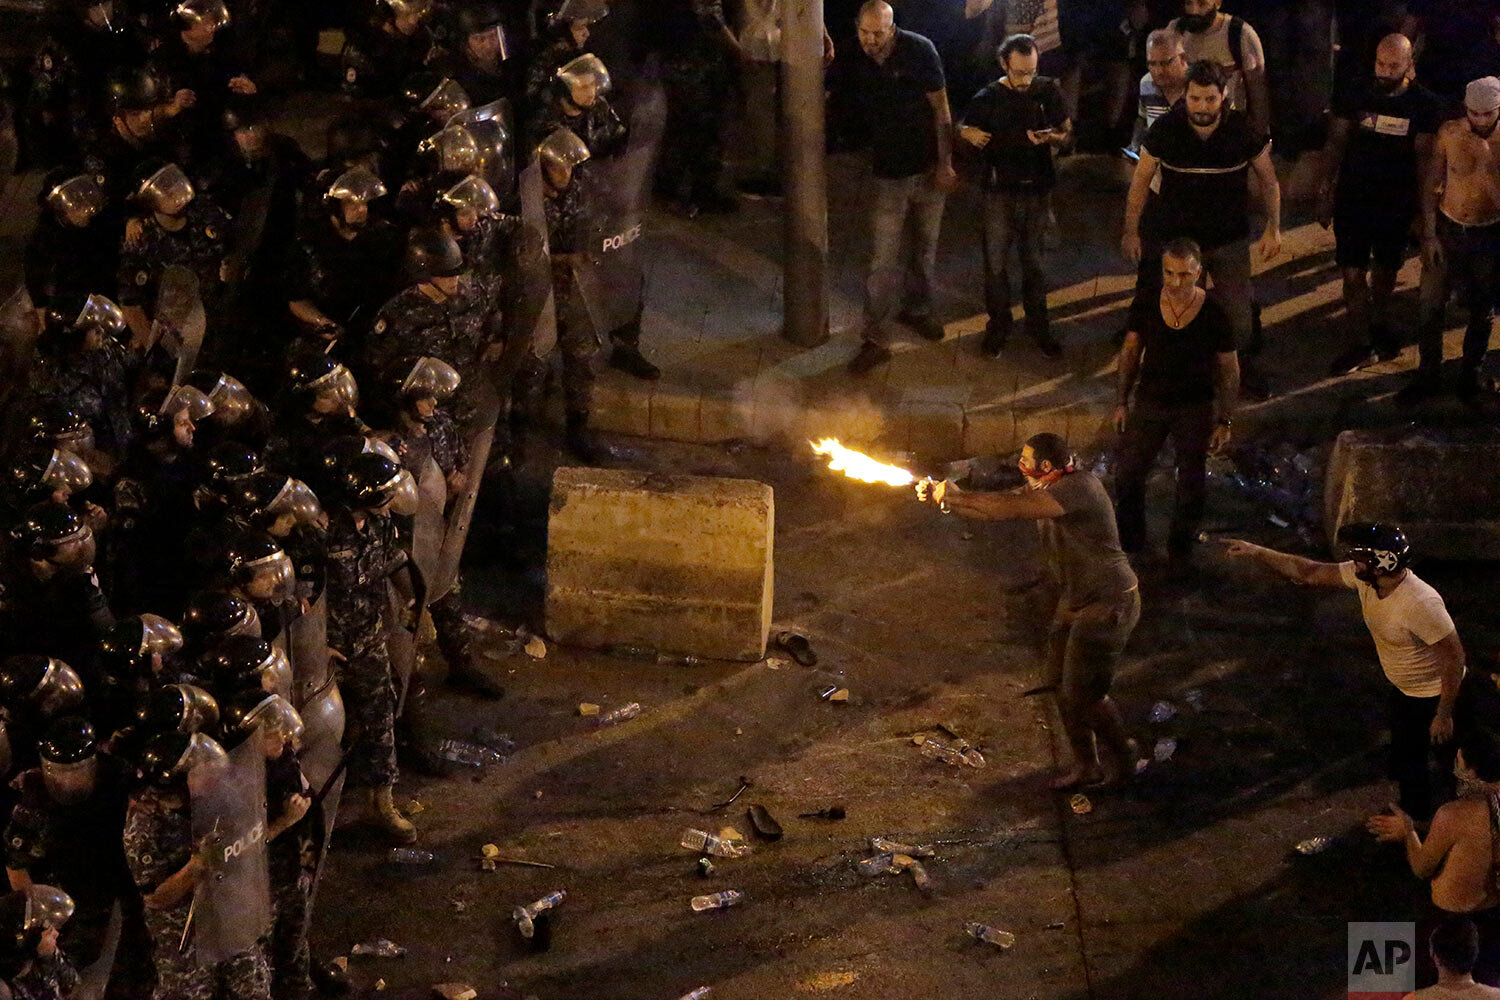 Anti-government protesters clash with riot policemen during a protest against government's plans to impose new taxes in Beirut, Lebanon, Friday, Oct. 18, 2019. Lebanon erupted in protests Thursday over the government's plans to impose new taxes amid a severe economic crisis, taking their anger on politicians they accuse of widespread corruption and decades of mismanagement. (AP Photo/Hassan Ammar)